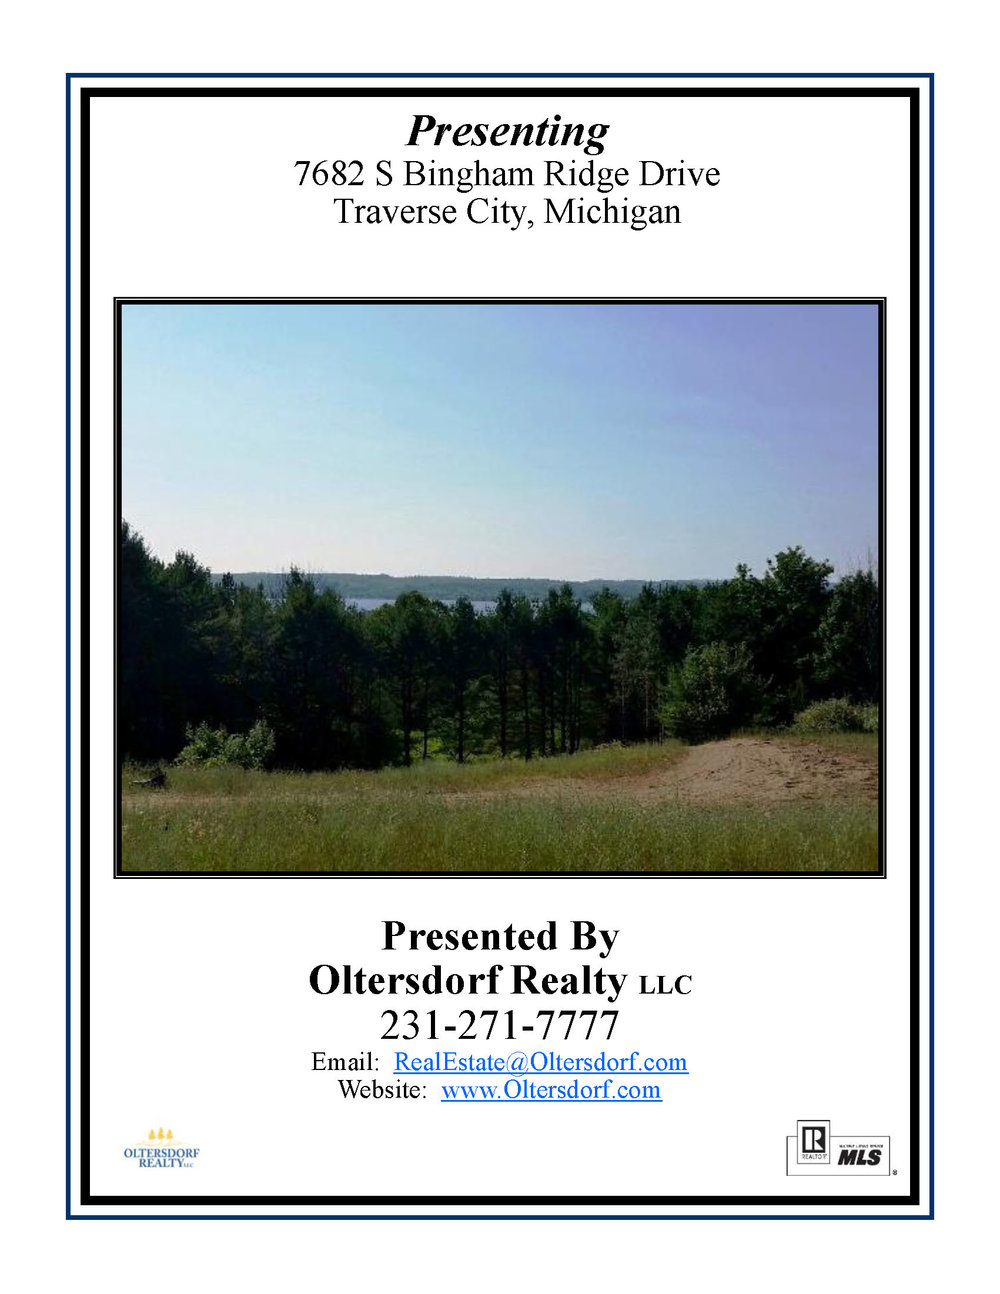 7682 S Bingham Ridge - For Sale by Oltersdorf Realty LLC_Page_01.jpg